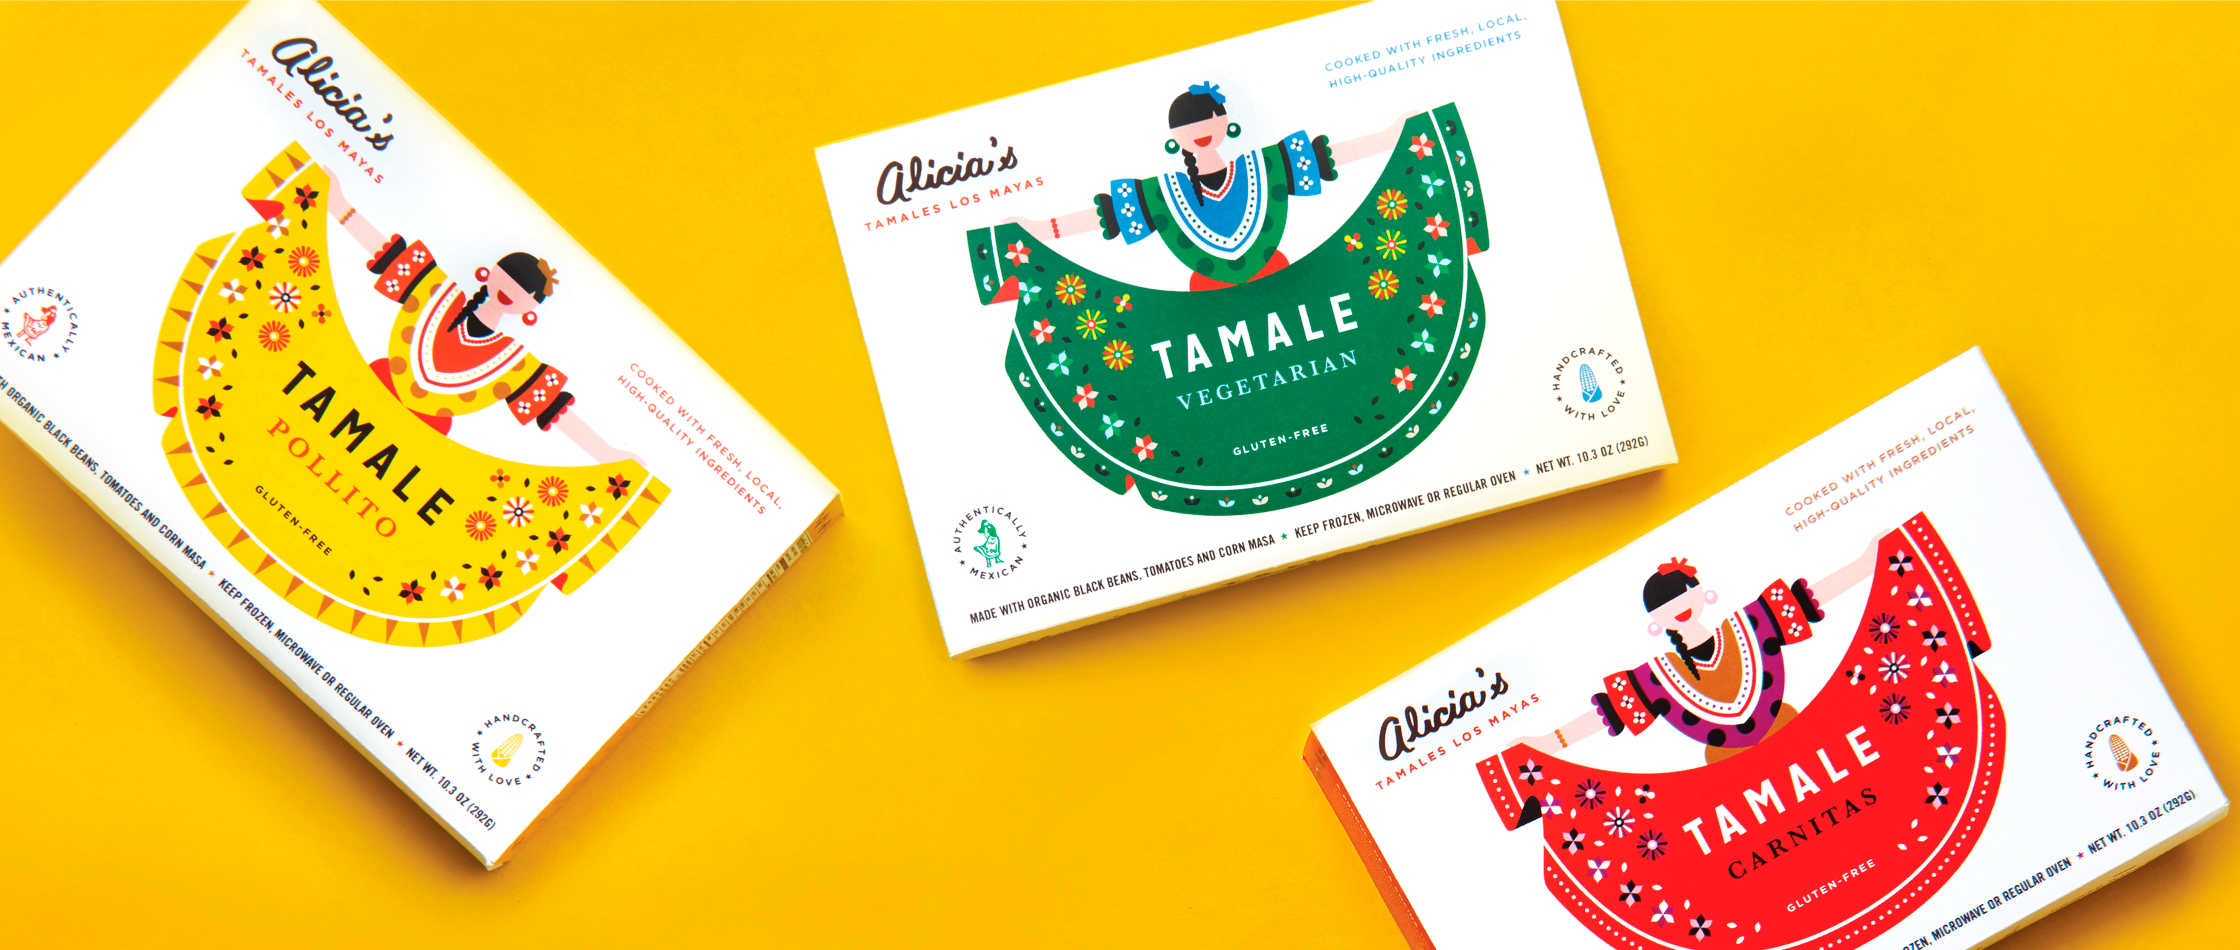 Line up of packaging for Alicia's Tamales Los Mayas packaging